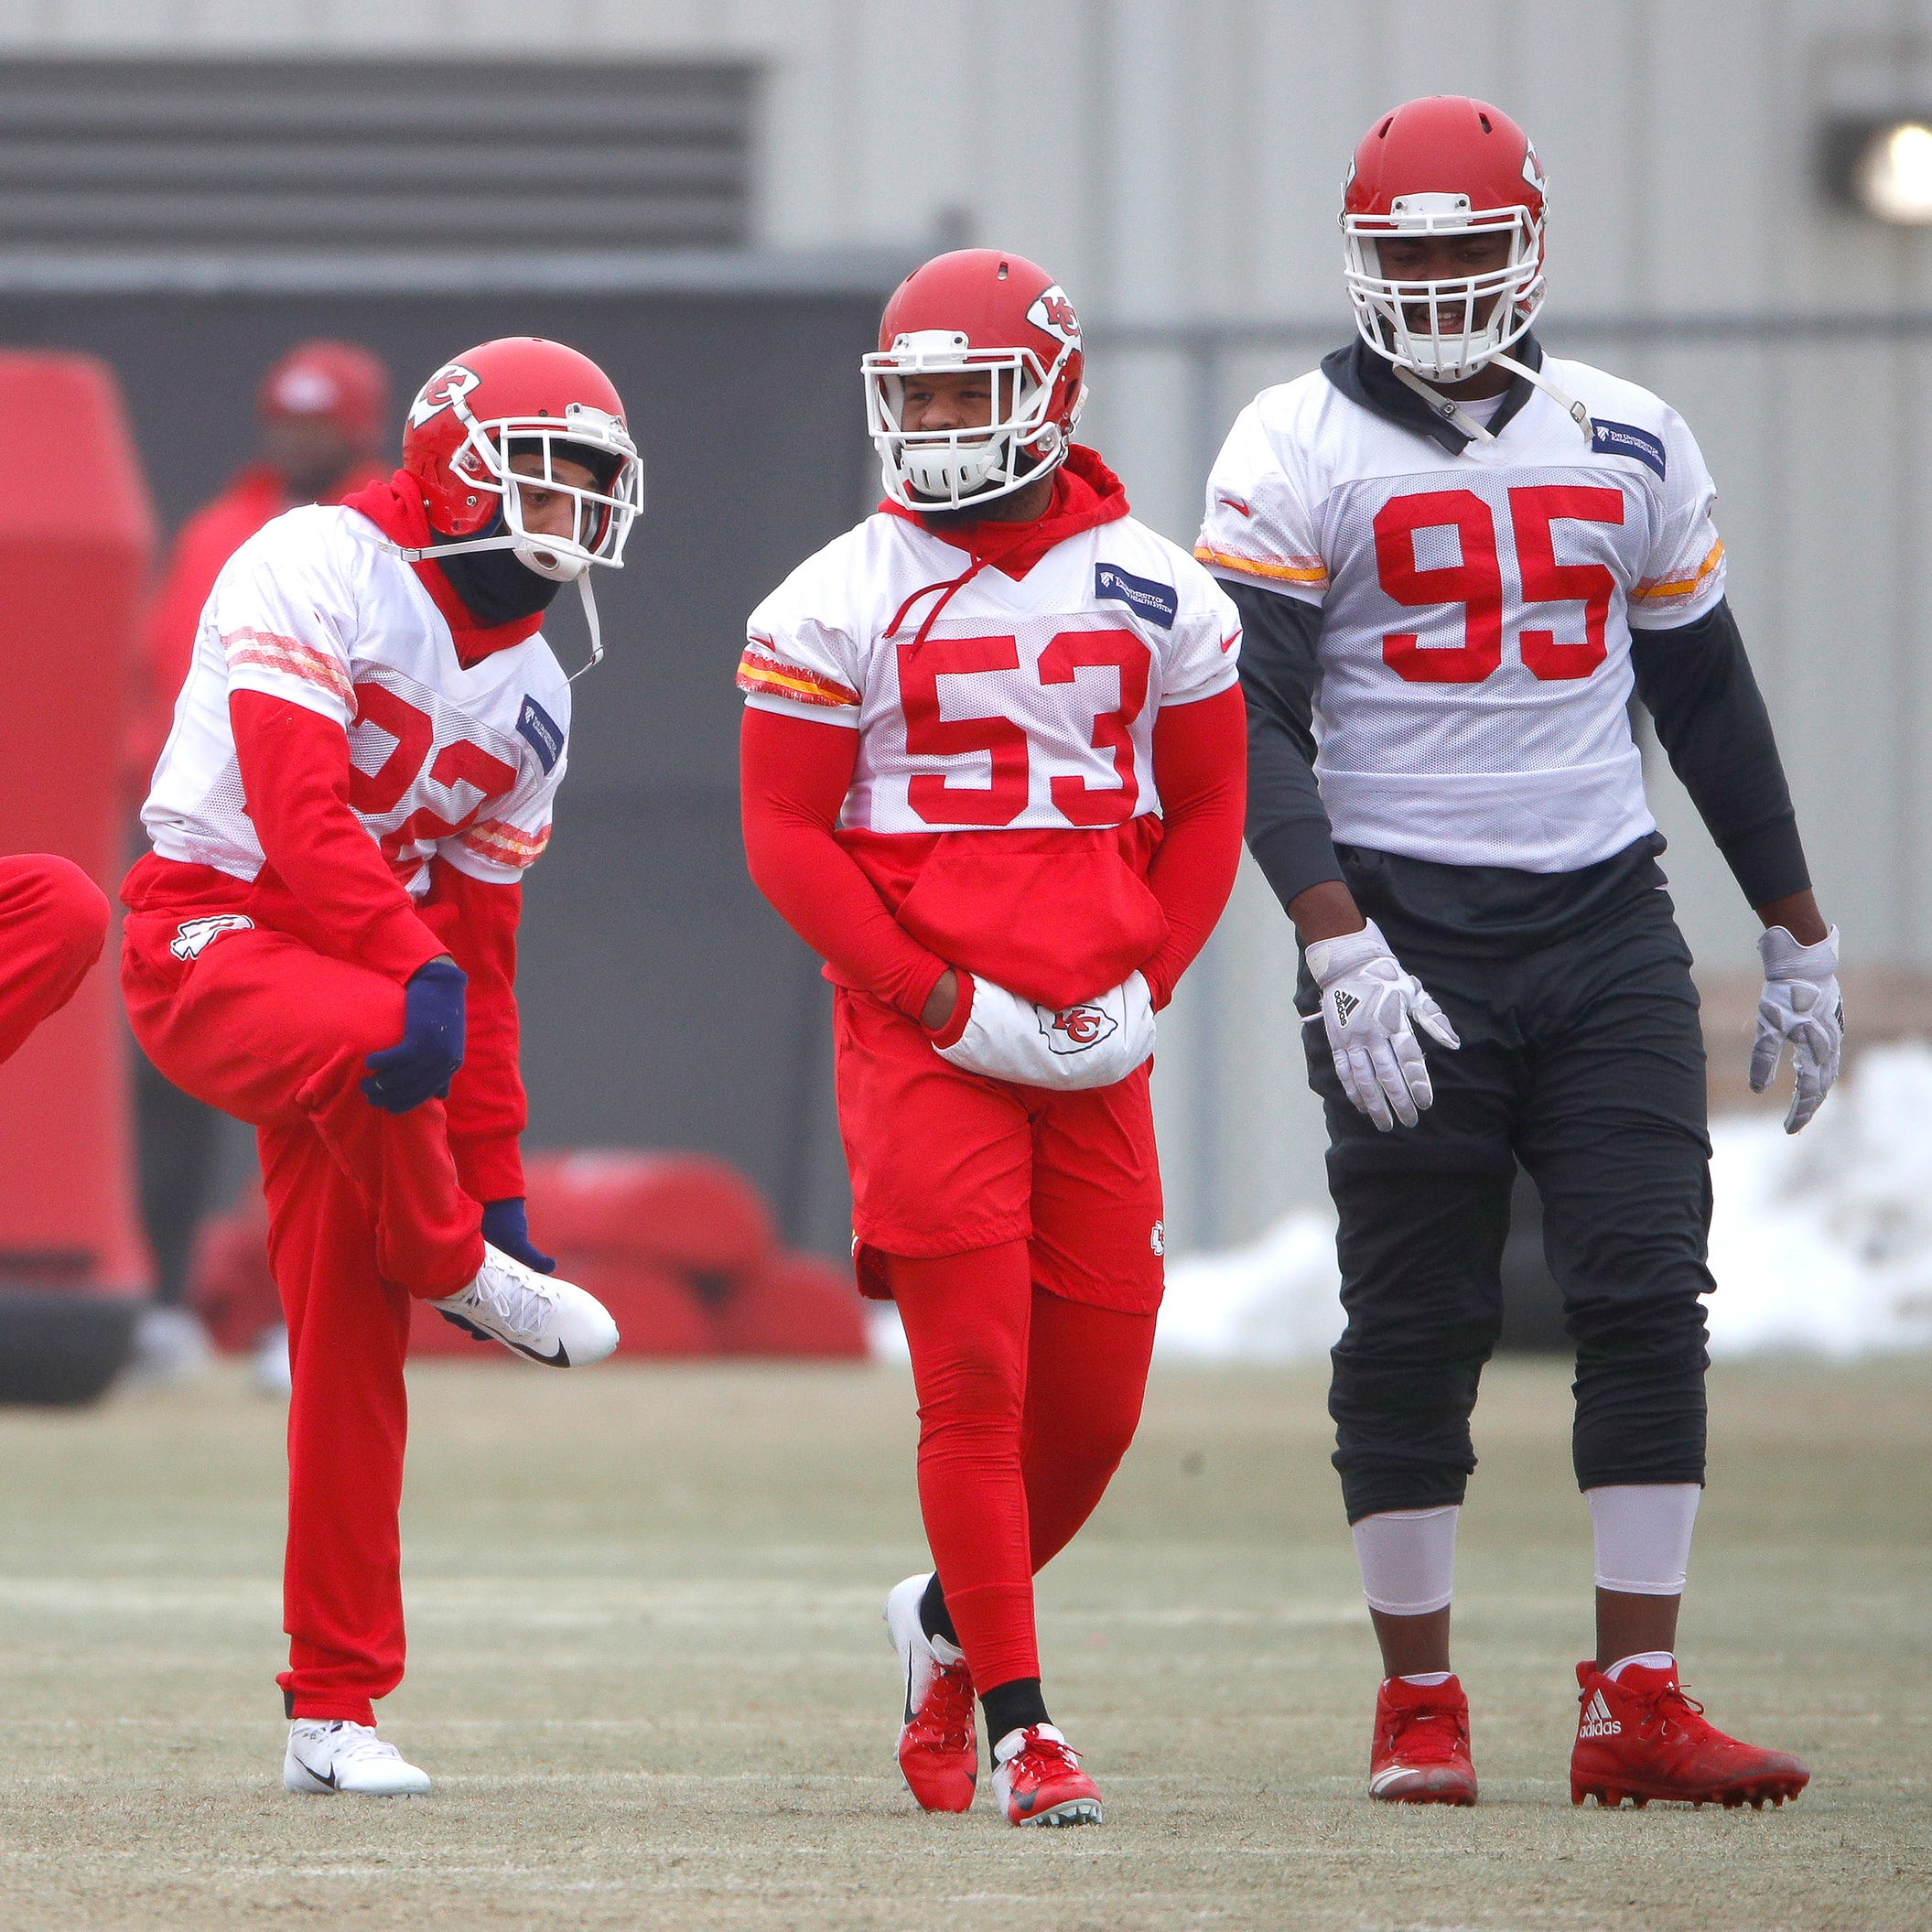 AFC: Chiefs' suddenly stingy defense gets test vs. Patriots